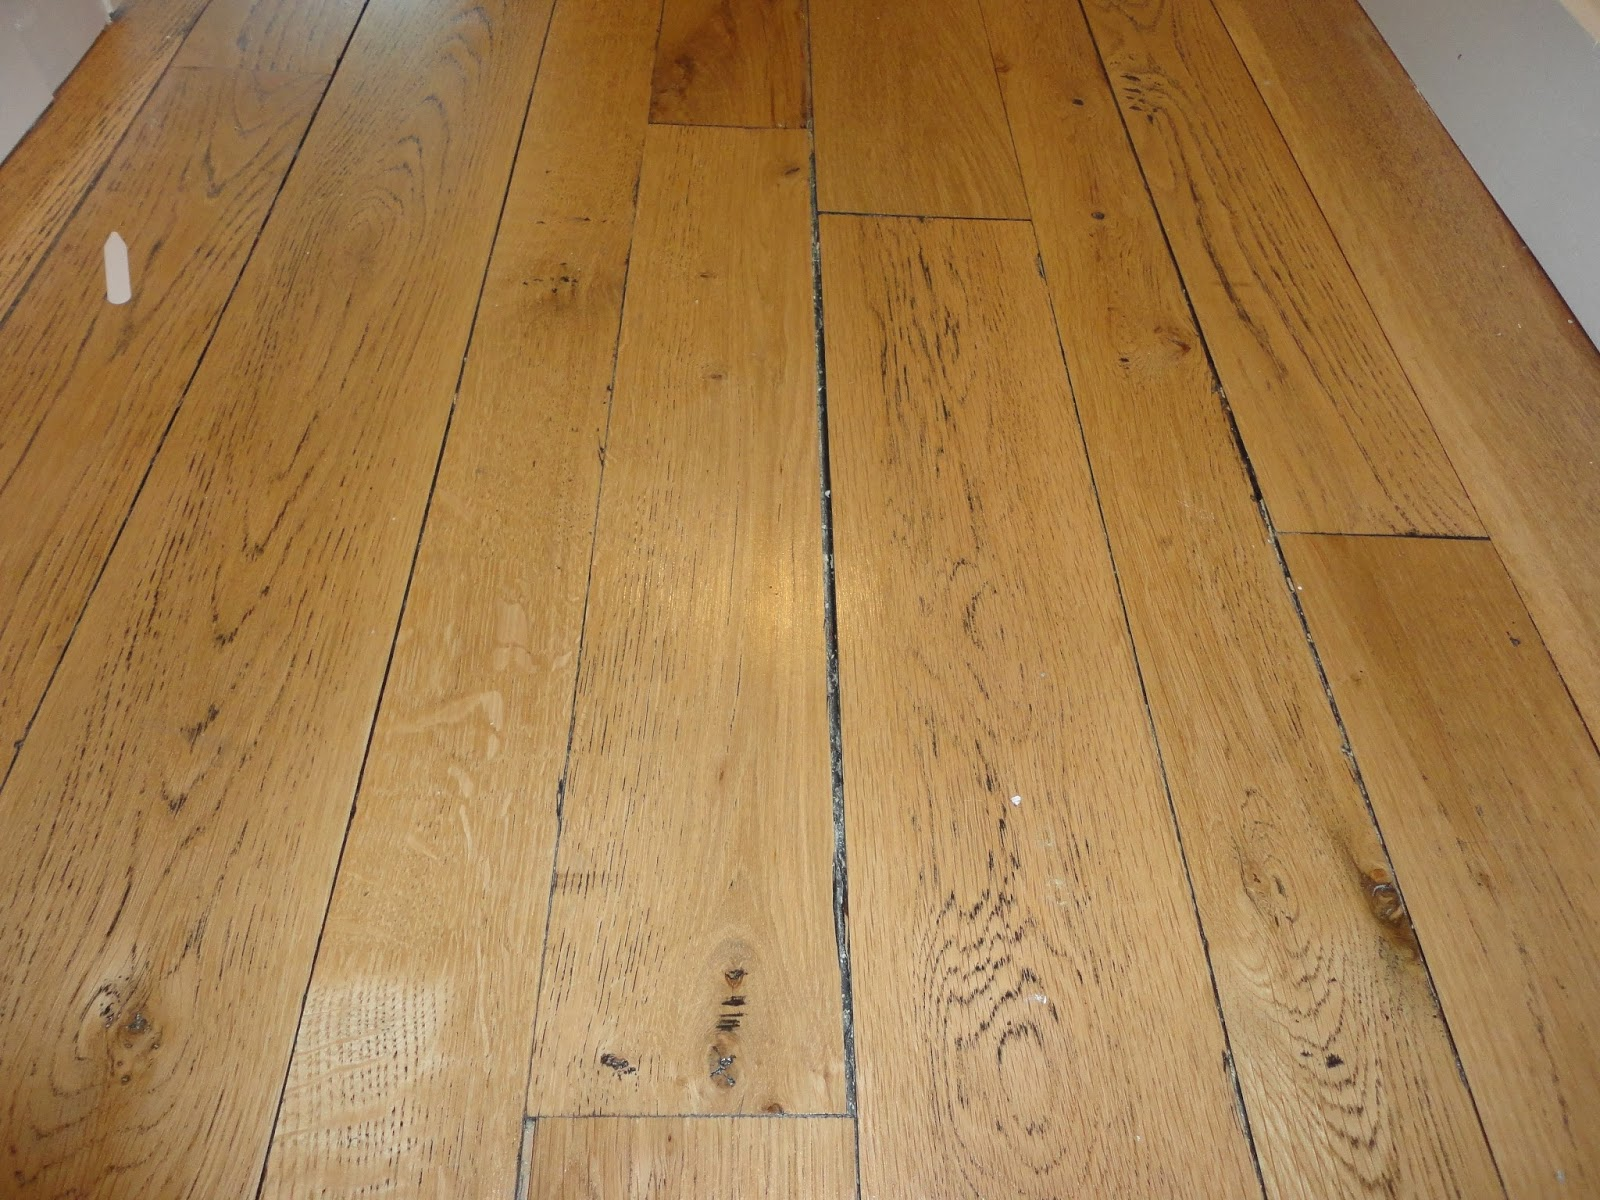 Our New White Washed Hardwood Flooring And Why We Had To